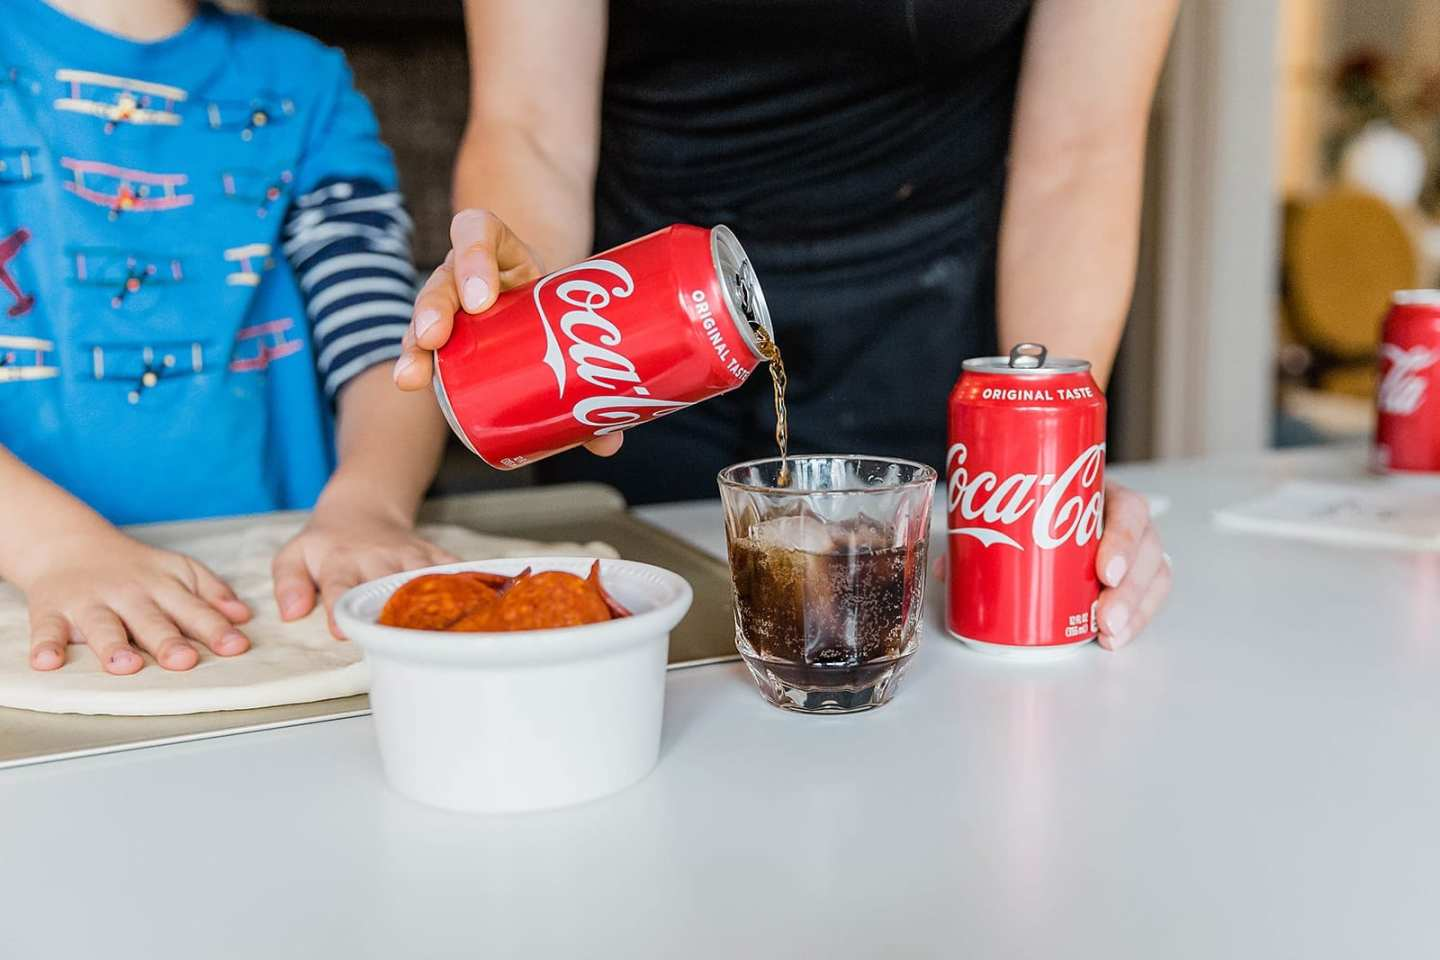 Coke Museum Atlanta. Pour yourself a Coke and celebrate the Super Bowl being held in Atlanta this year!